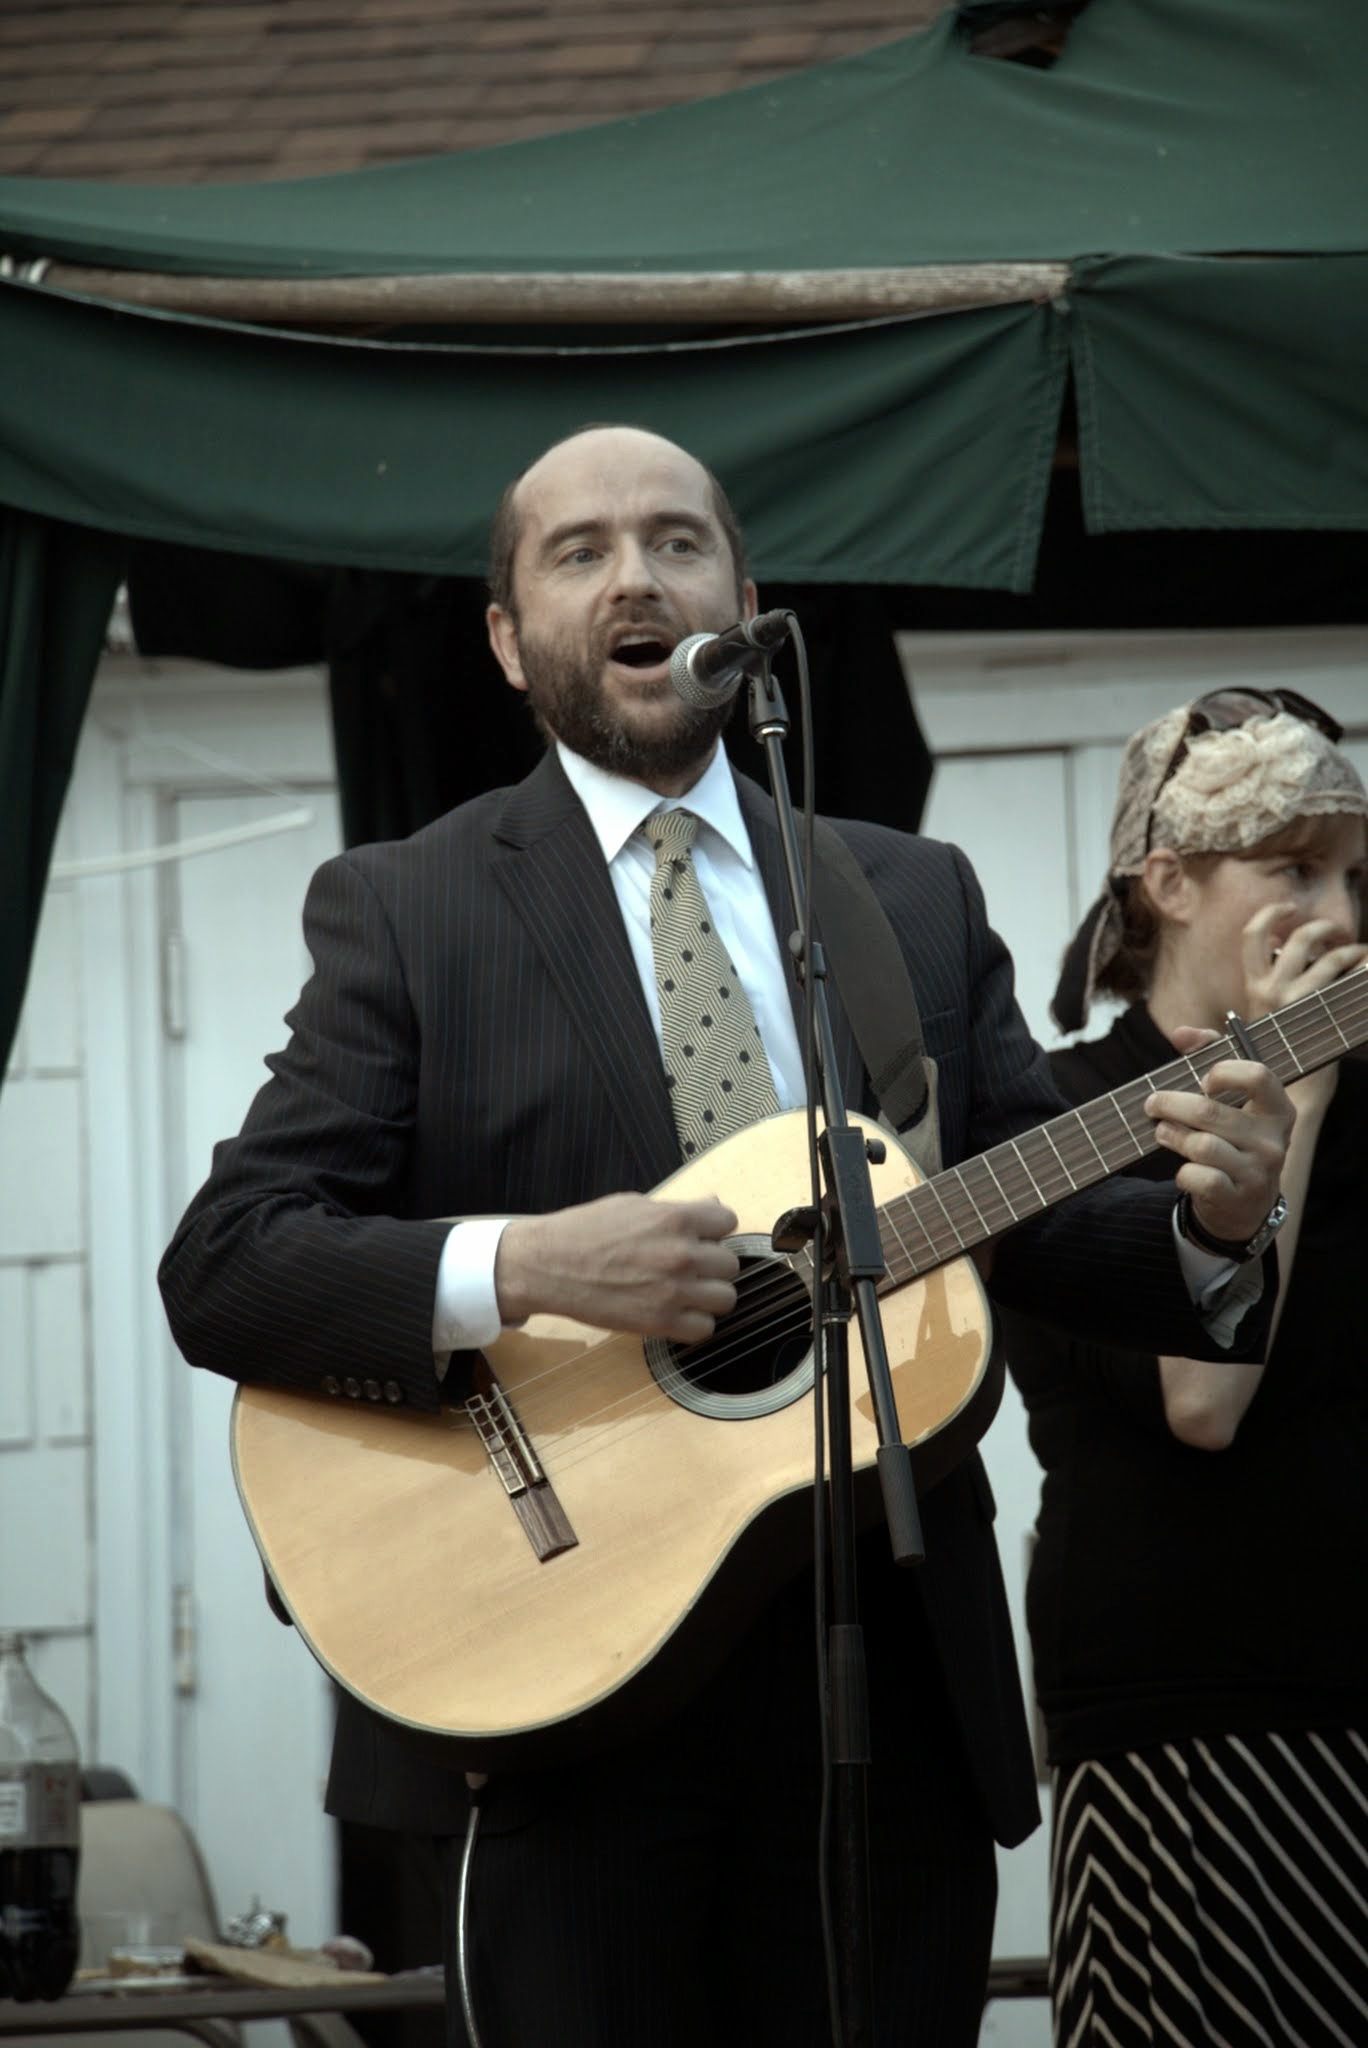 Rabbi Dunner sings and plays guitar at Yom Haatzmaut celebration party in Beverly Hills (2014)